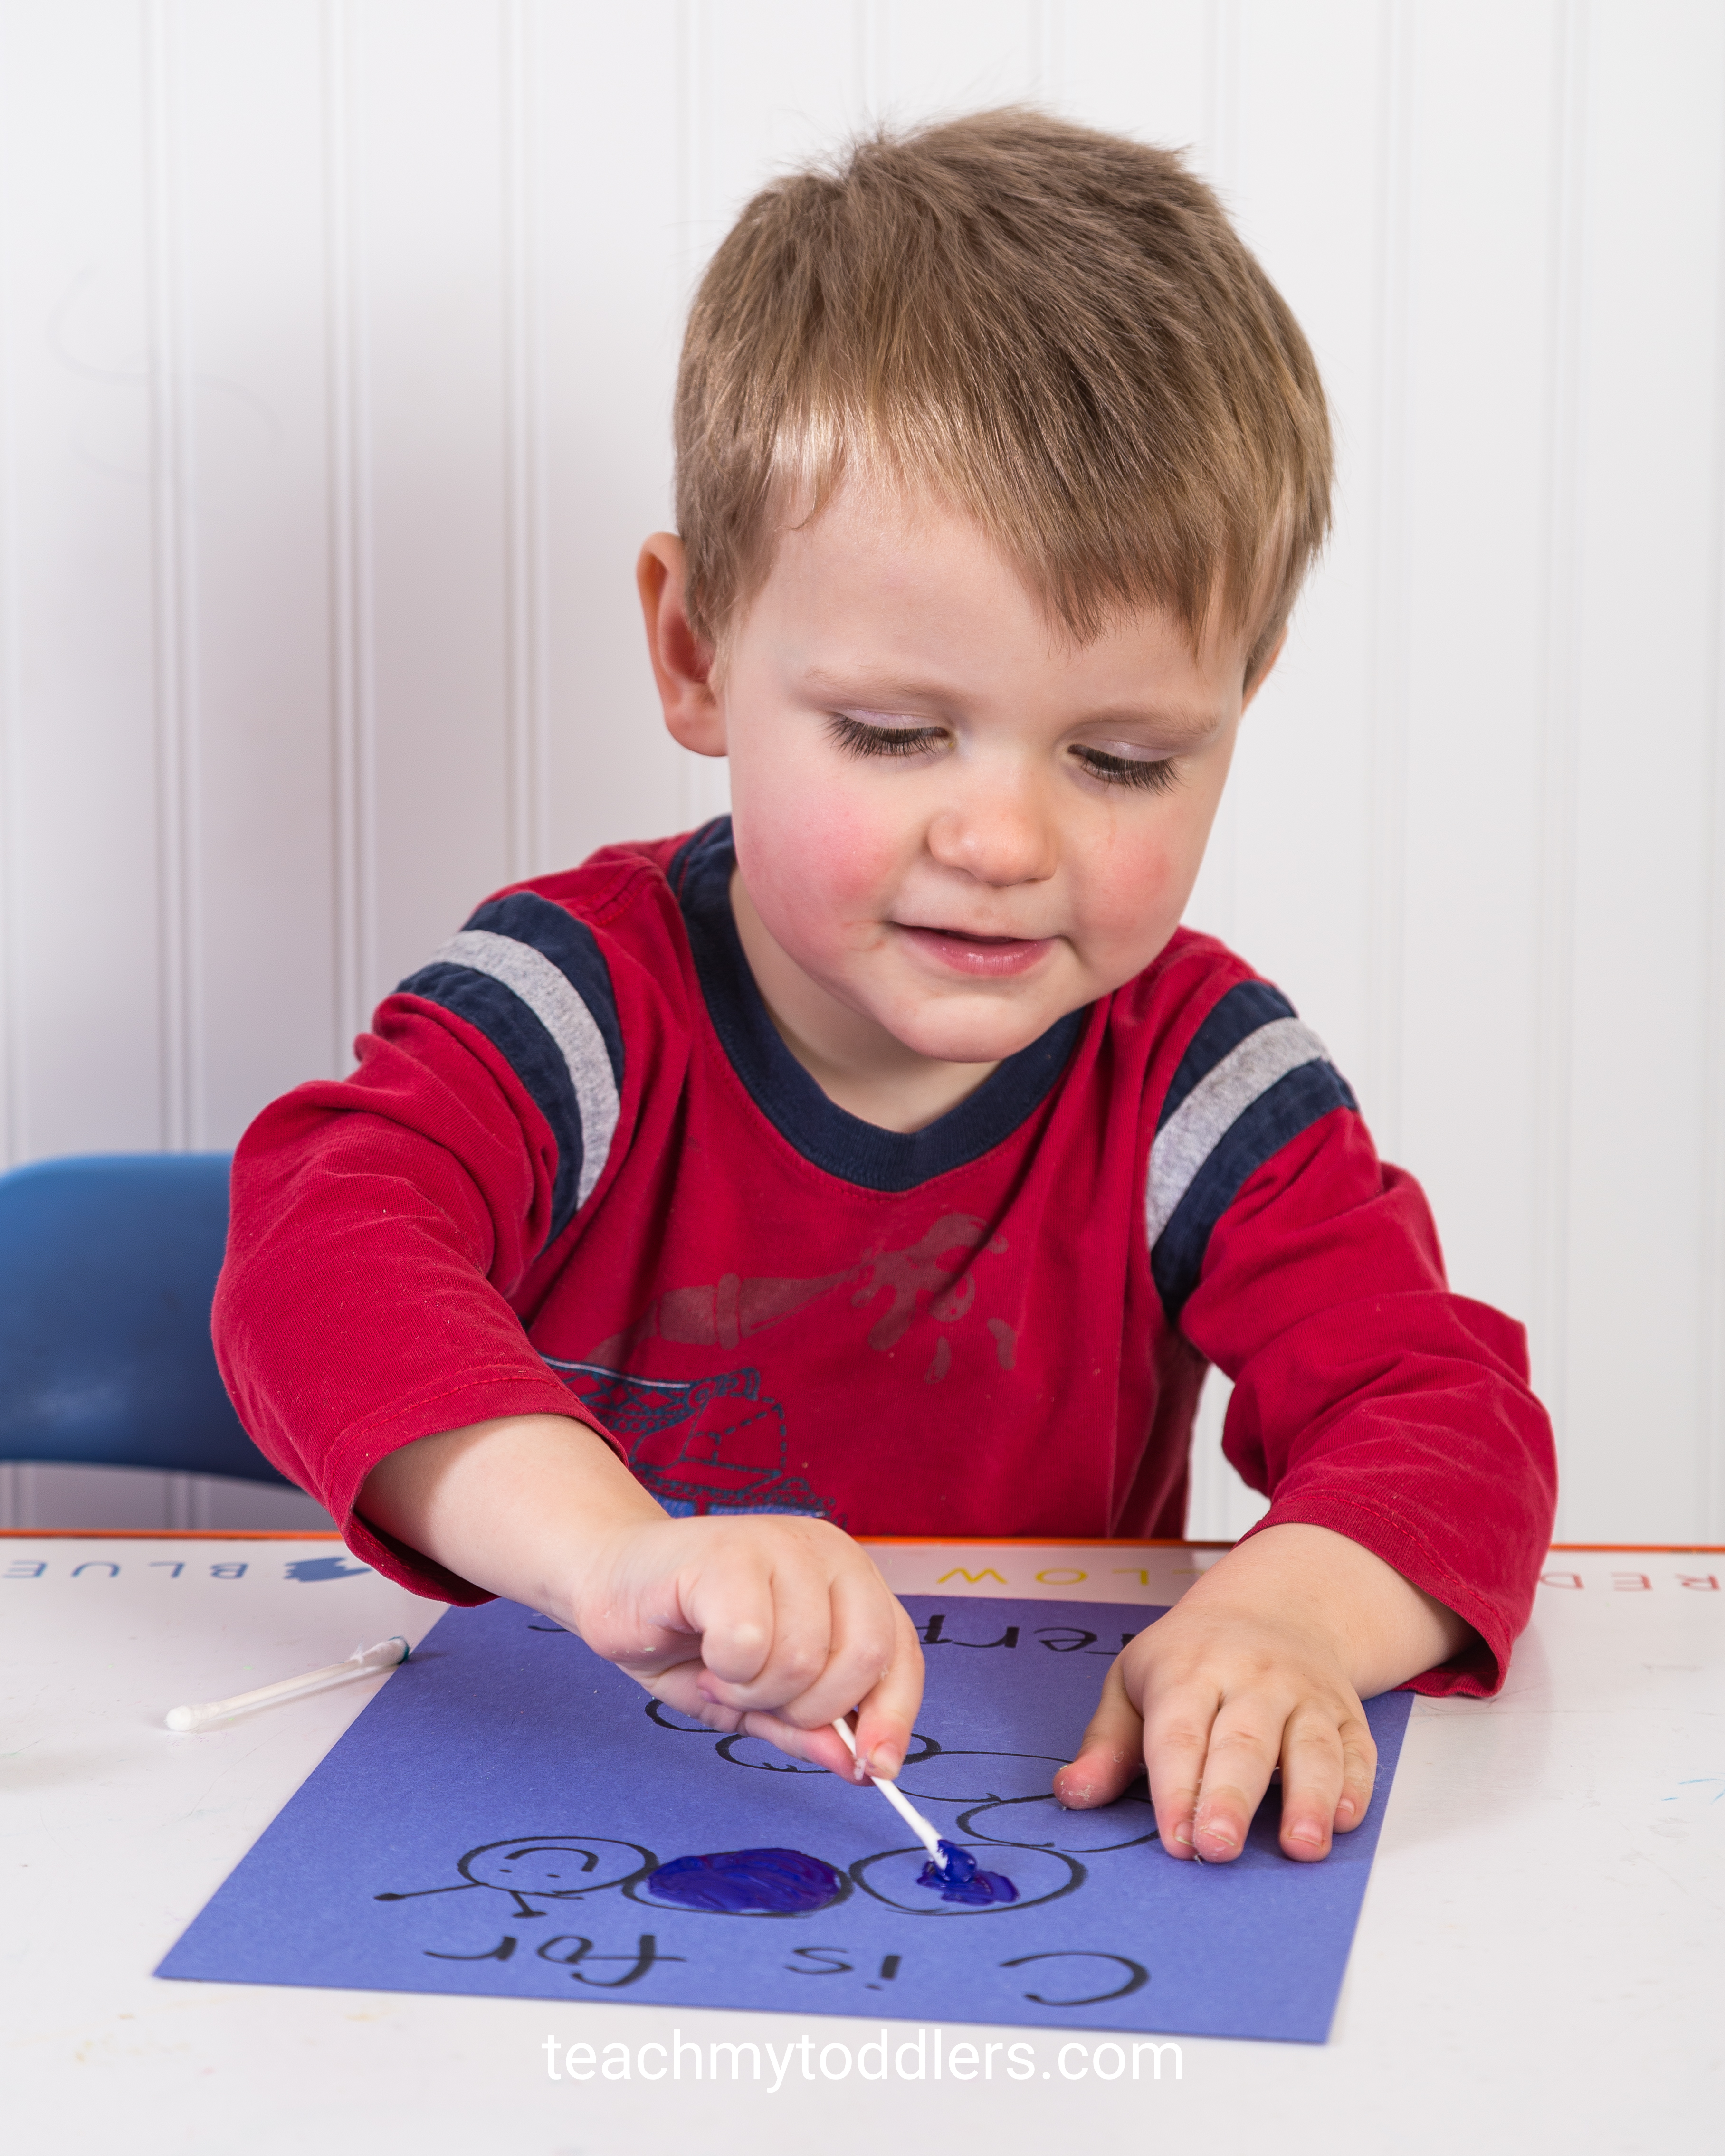 Use these exciting activities to teach your toddlers the letter c is for community helpers